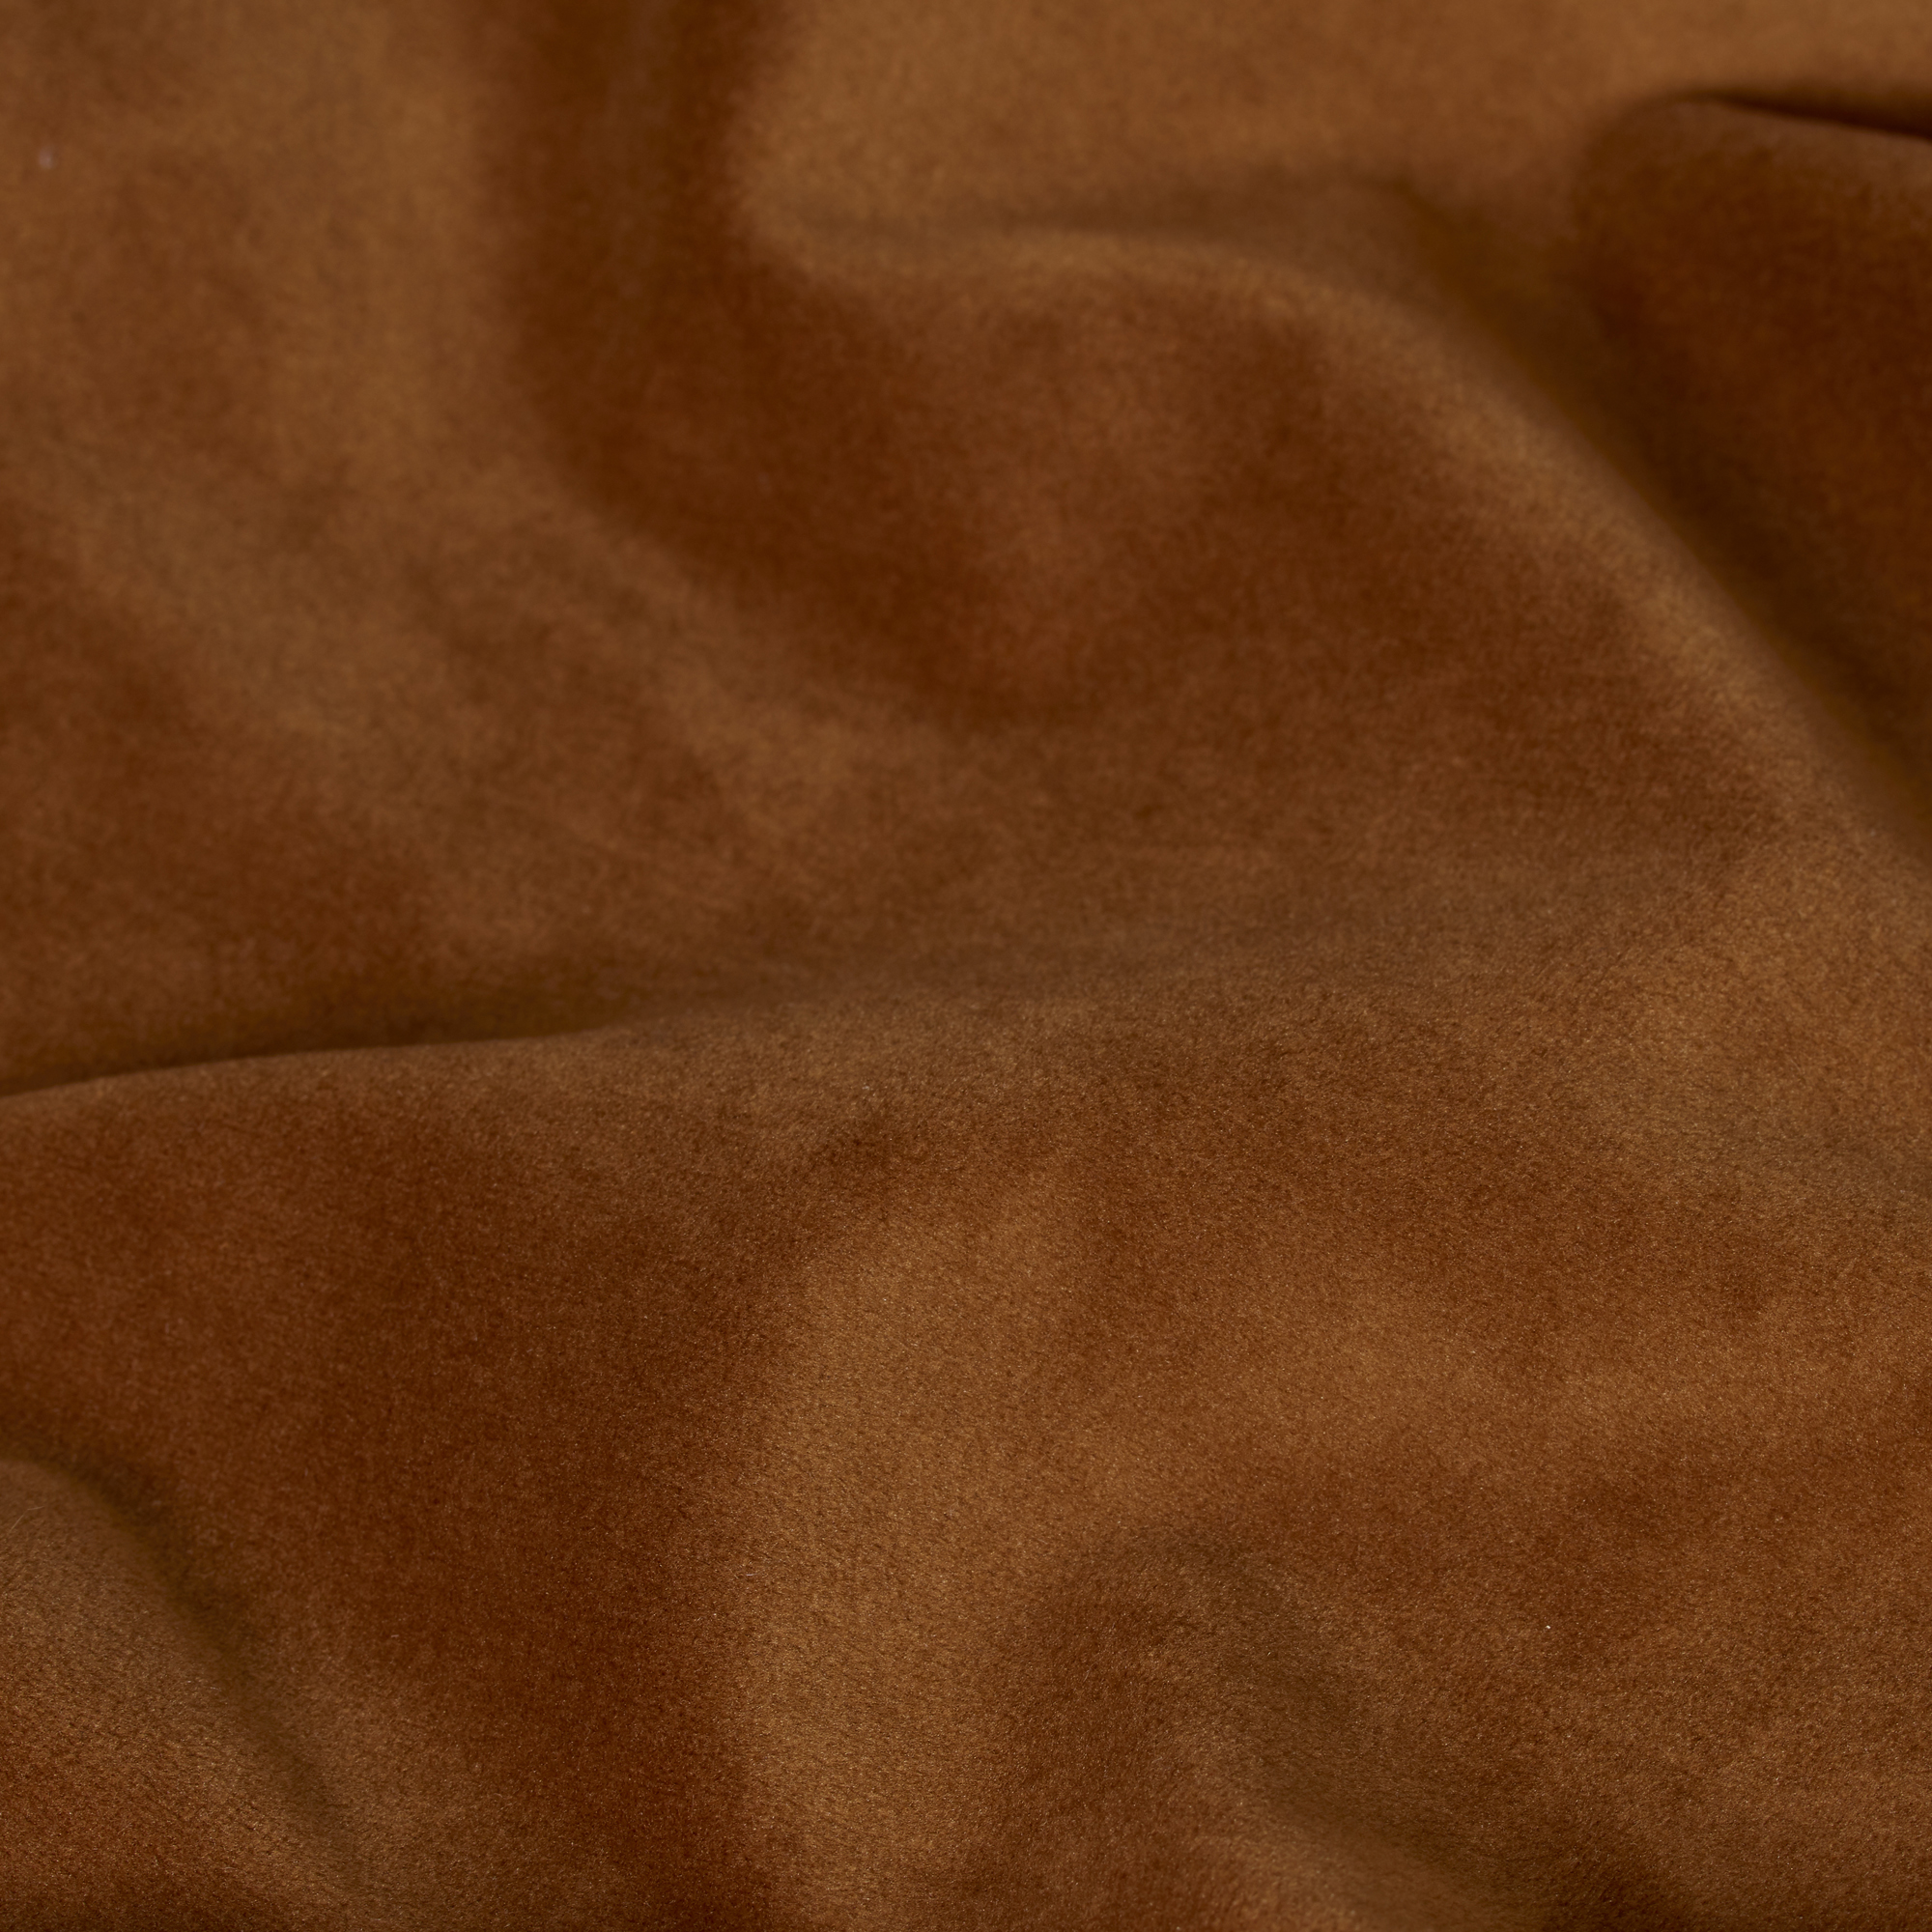 Kopi af Velvet - Terracotta Orange(1).jpg